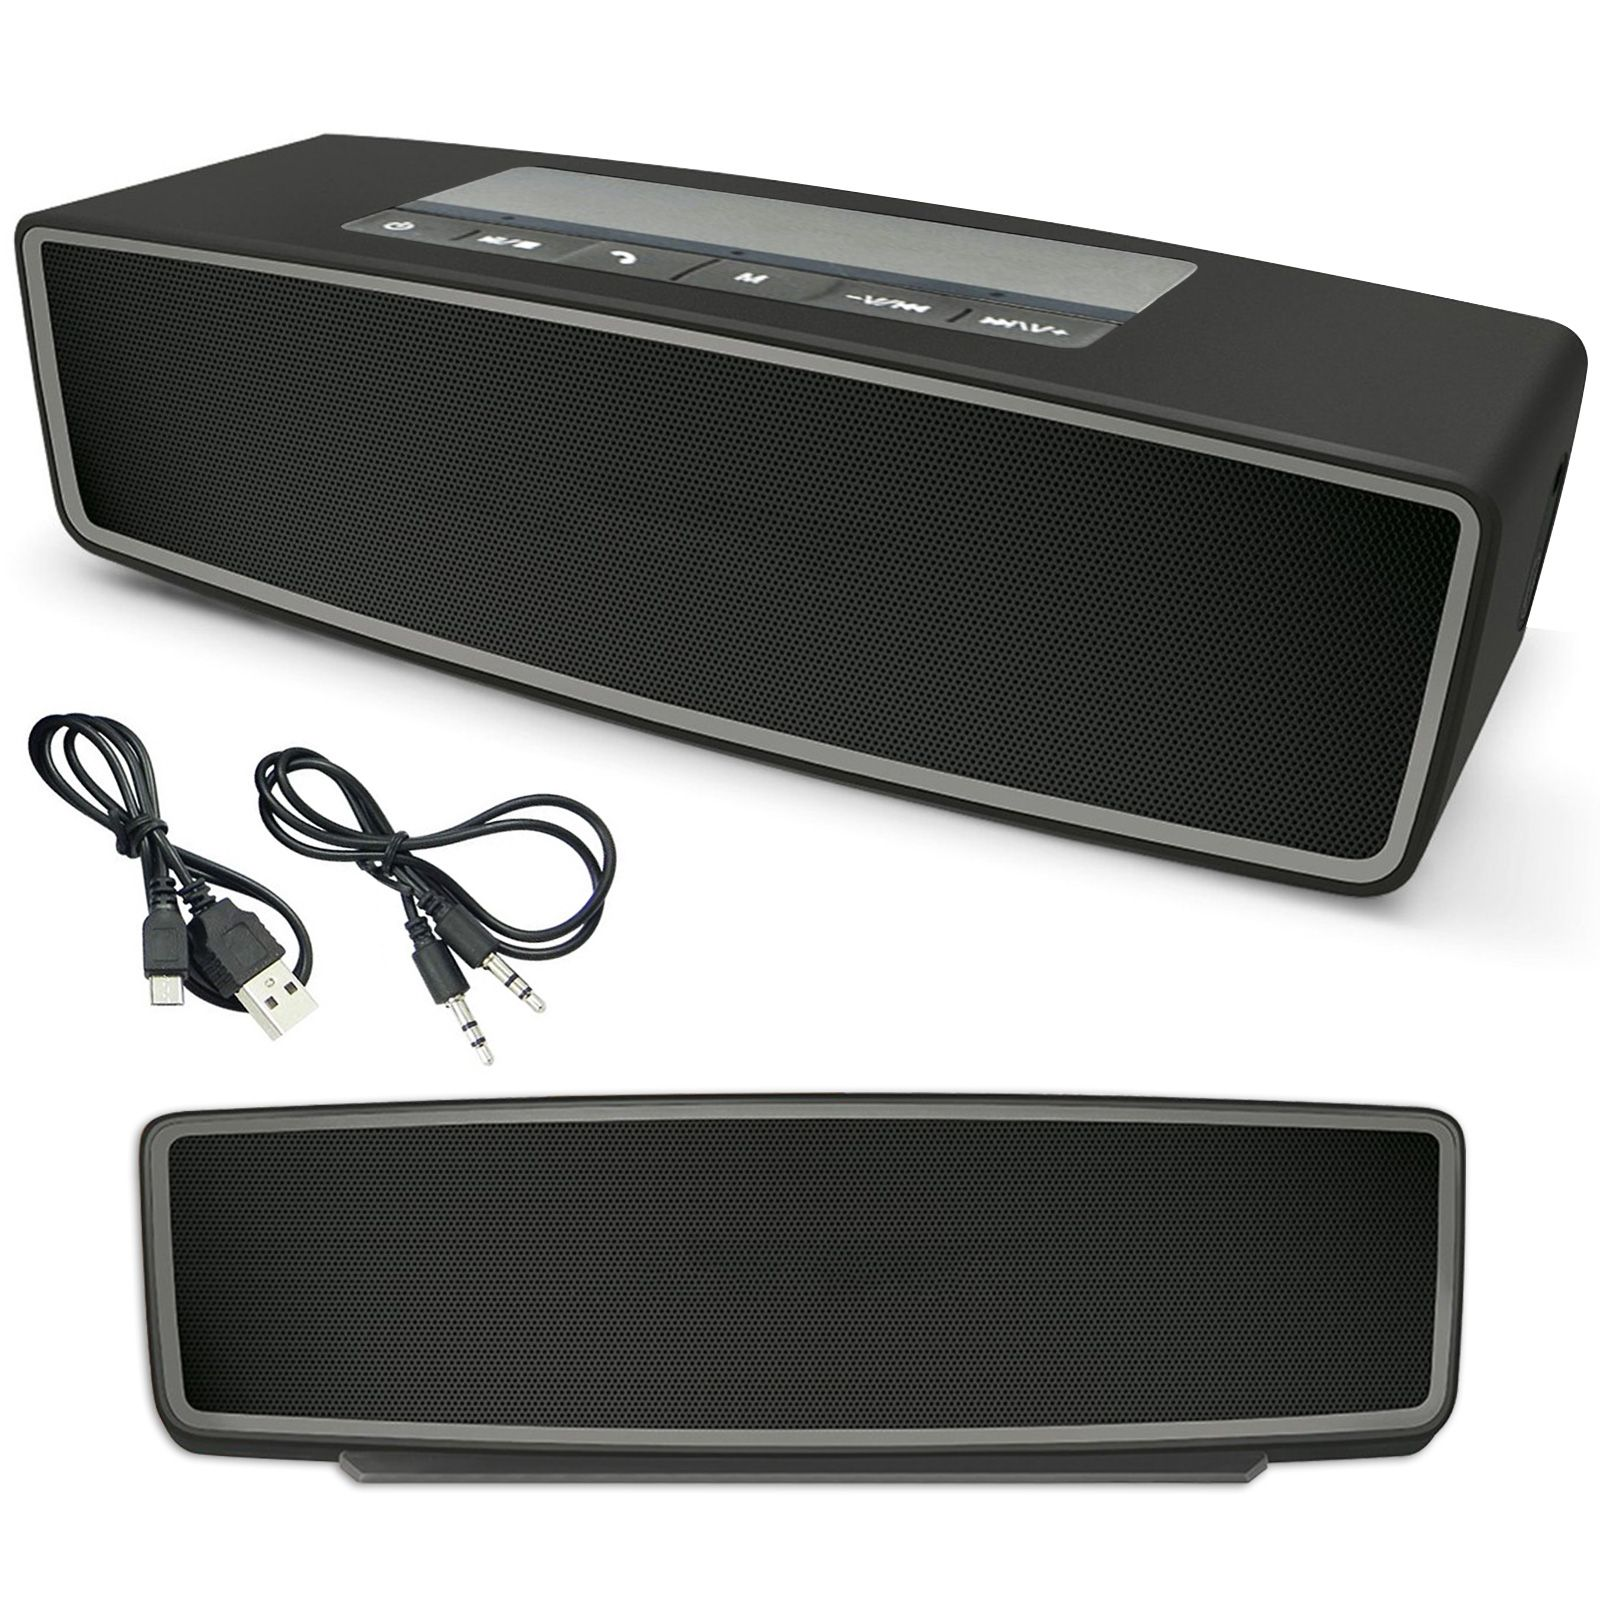 Wireless Portable Rechargable Bluetooth Speaker For iPhone,iPod,iPad and Samsung at £9.25 on Xpress Buyer